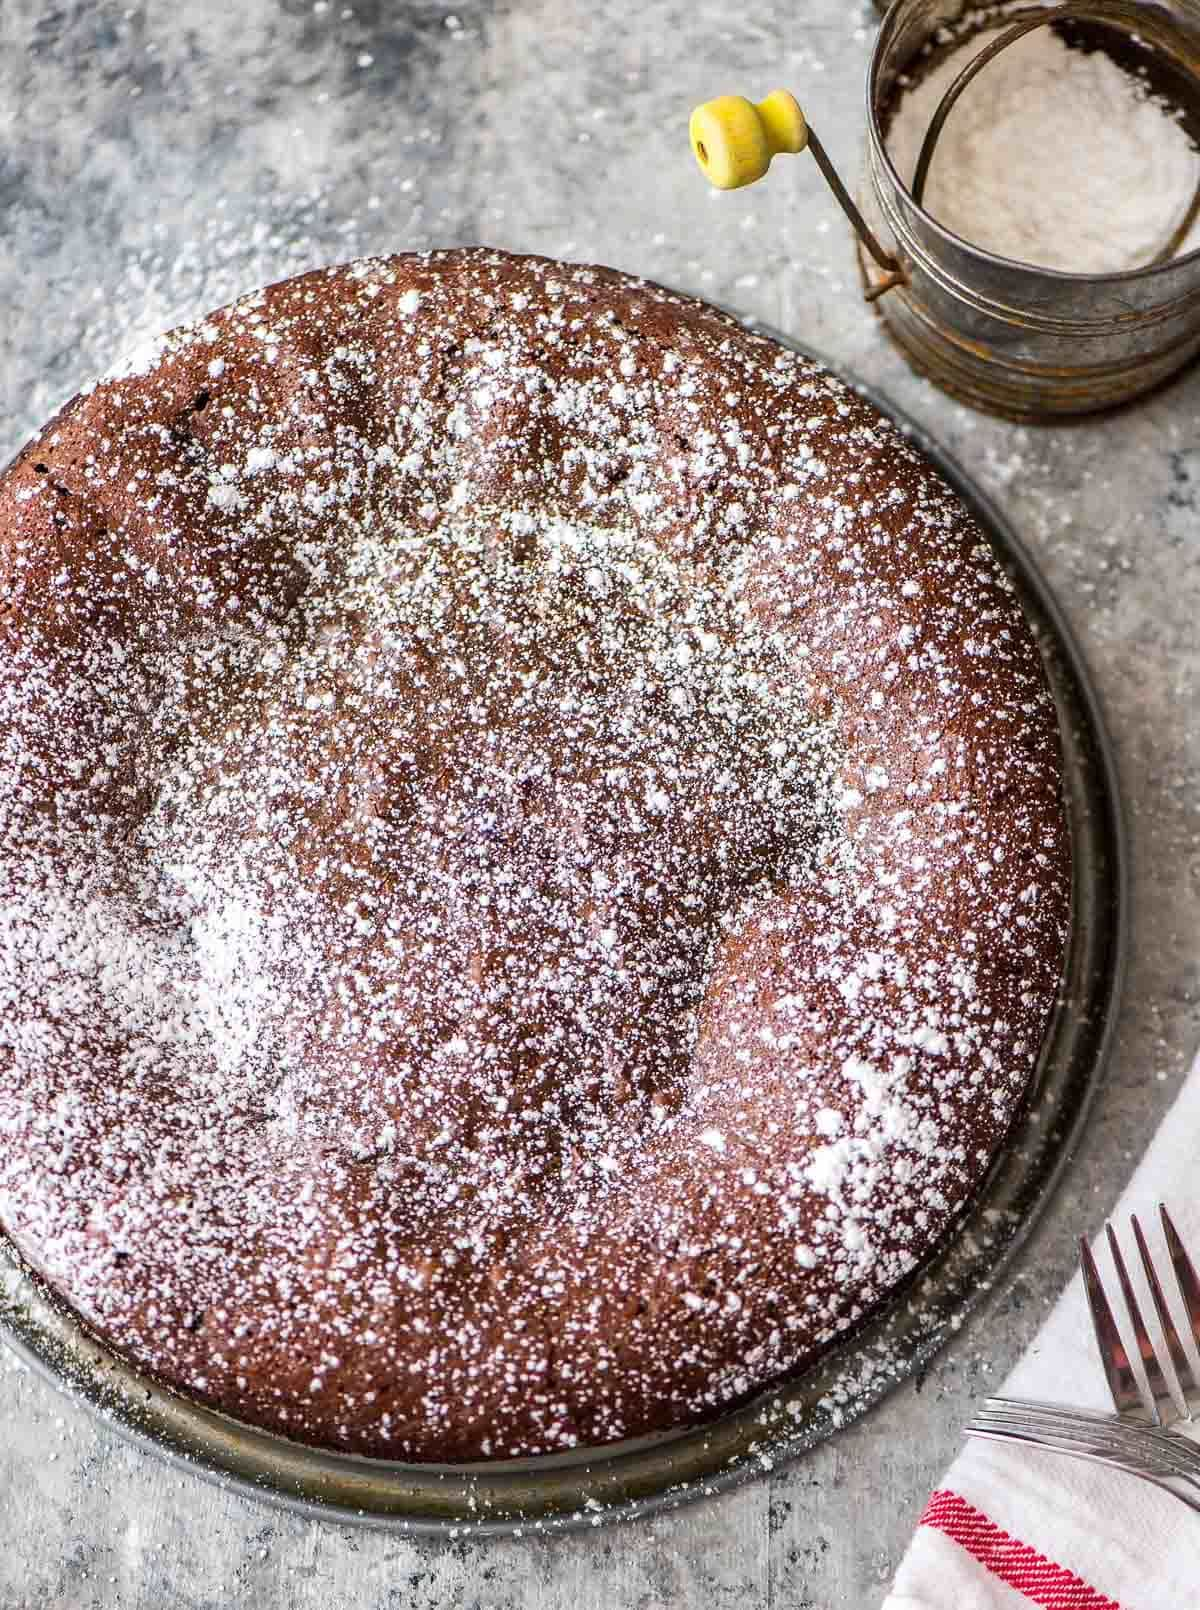 Flourless Chocolate Torte – Easy and impressive! Silky smooth, ultra chocolaty, and easy to make ahead! The perfect party dessert. Recipe at wellplated.com | @wellplated